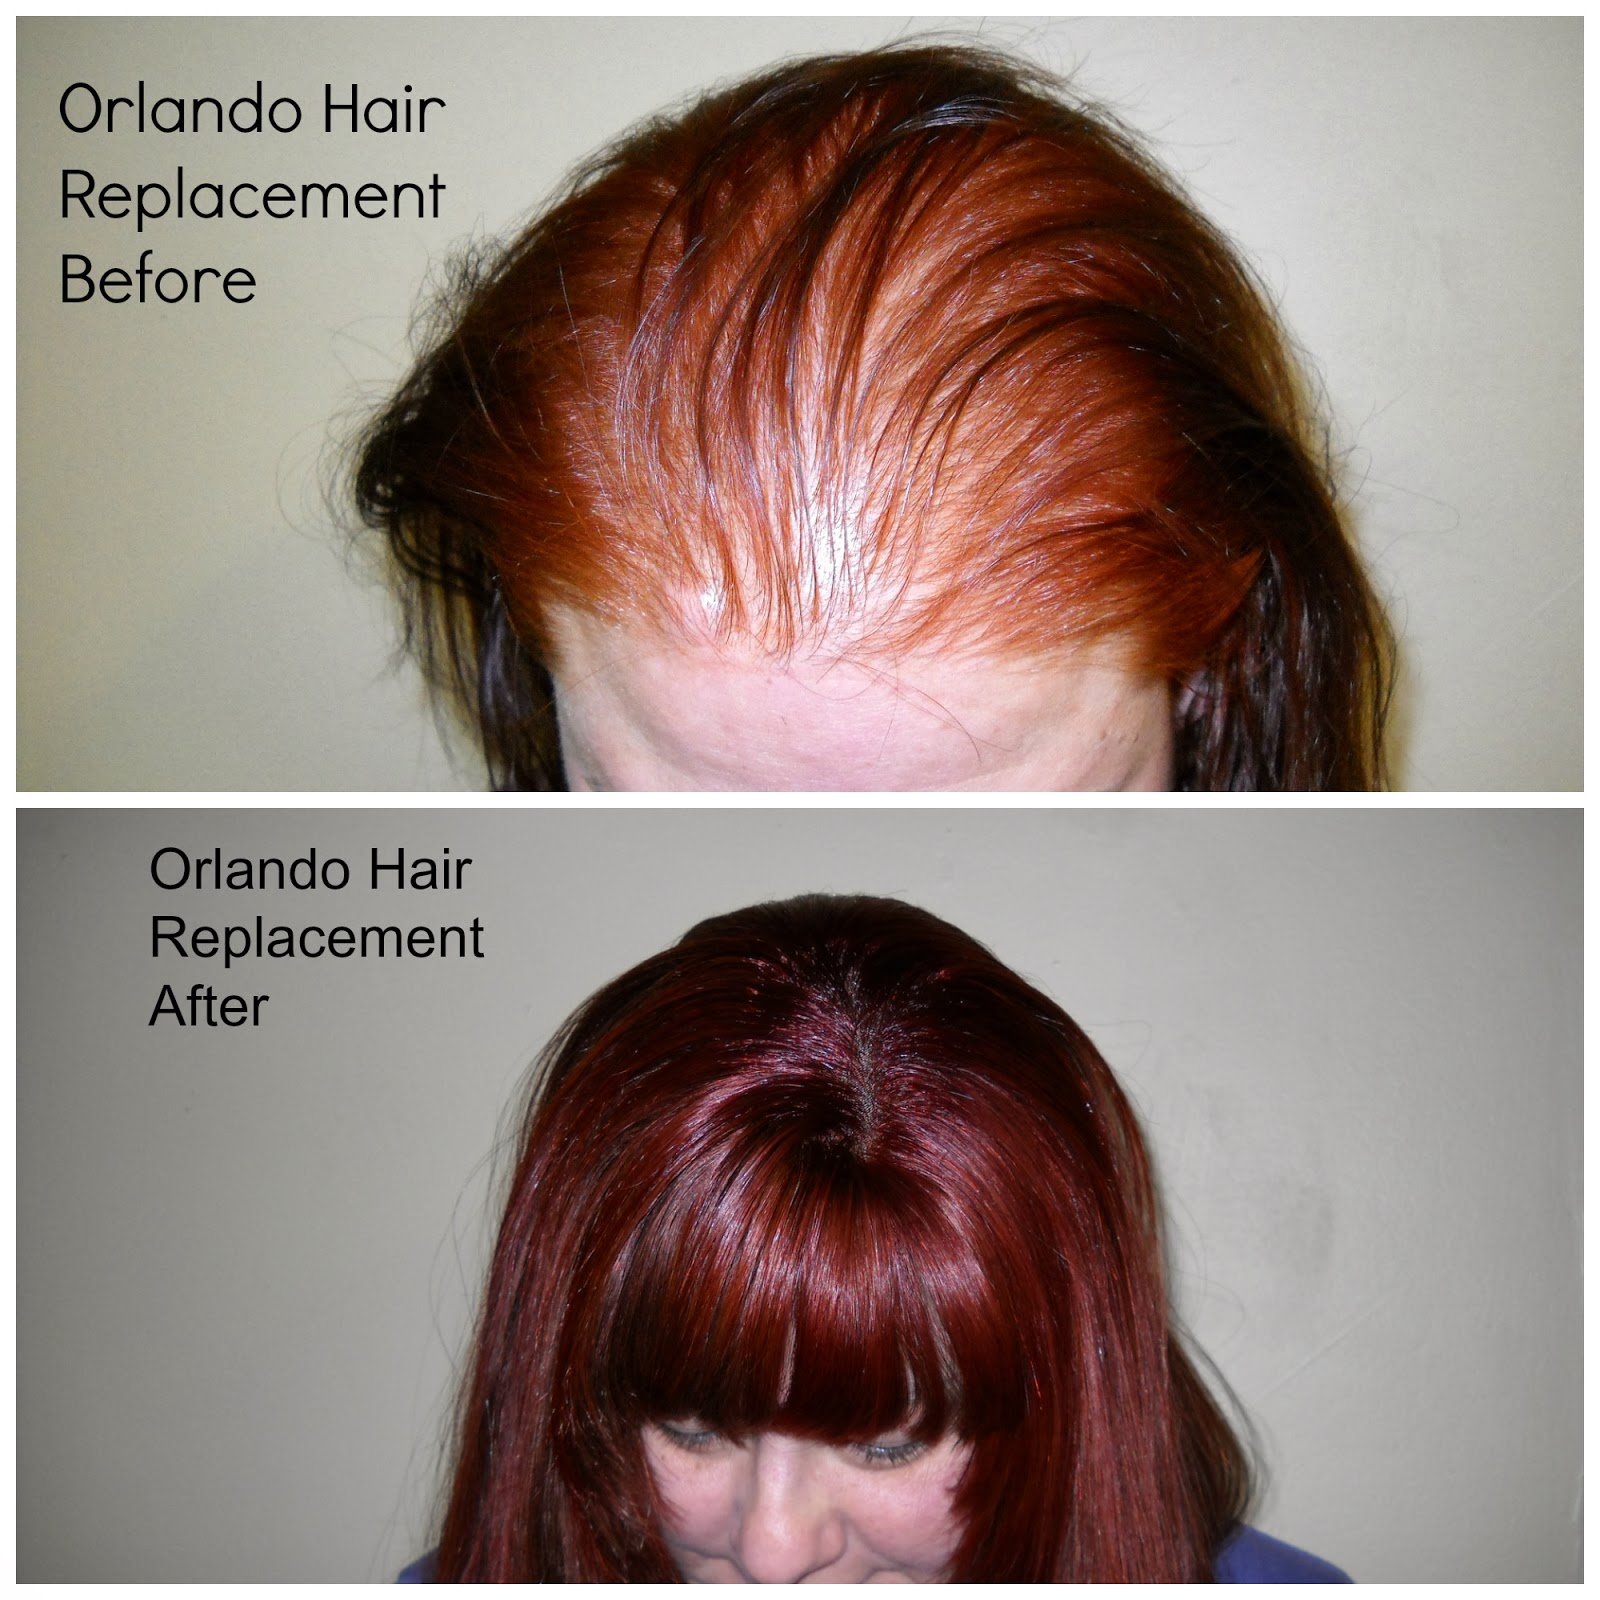 Braidless sew in hair extensions orland shallamars hair sollutions another method for braidless sew in hair extensions is the interlok net wrapping system this is used when more than four rows is needed or for bald spots pmusecretfo Images